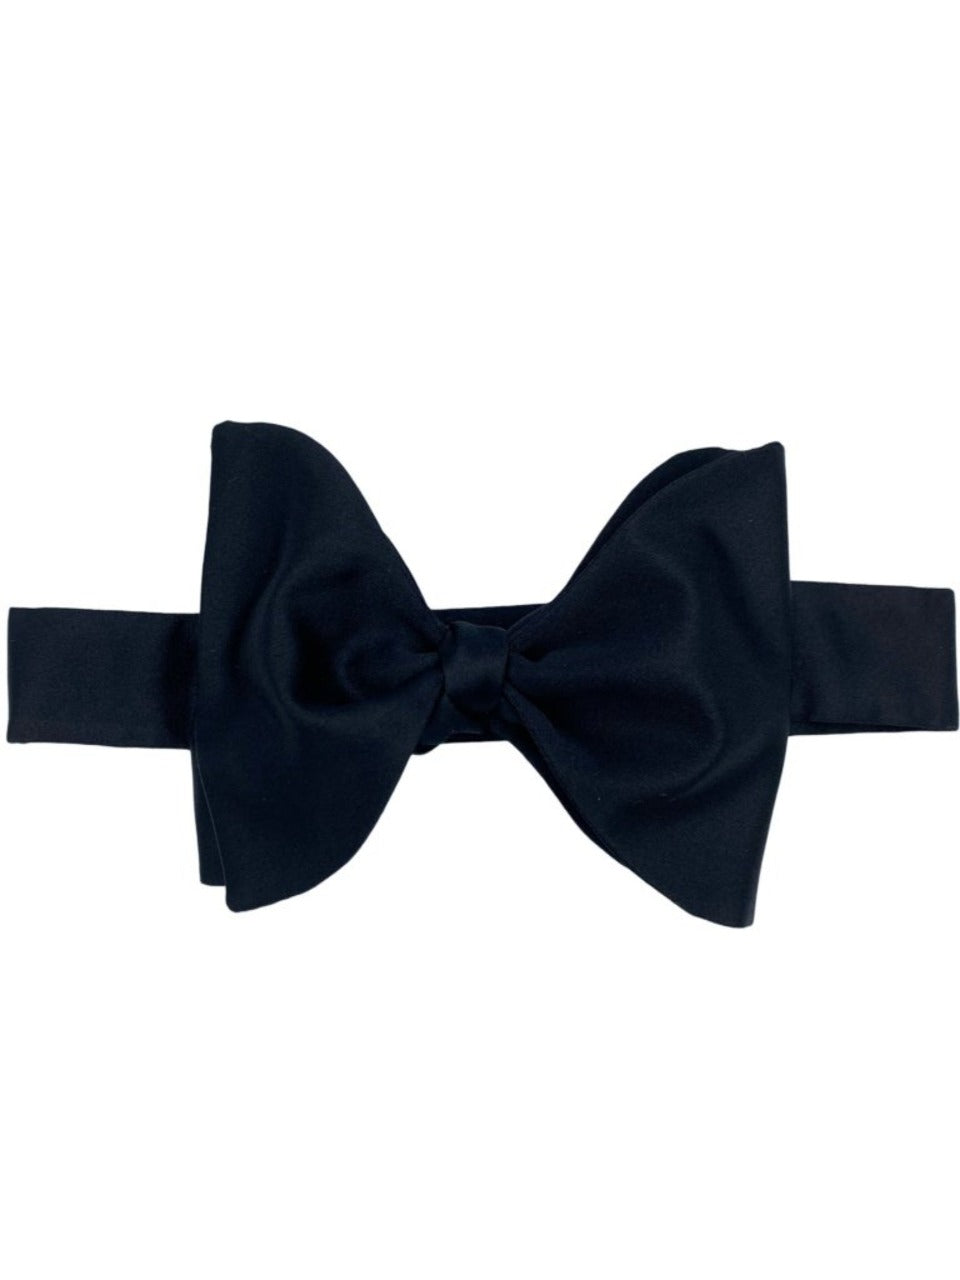 black silk self tie bow made in USA